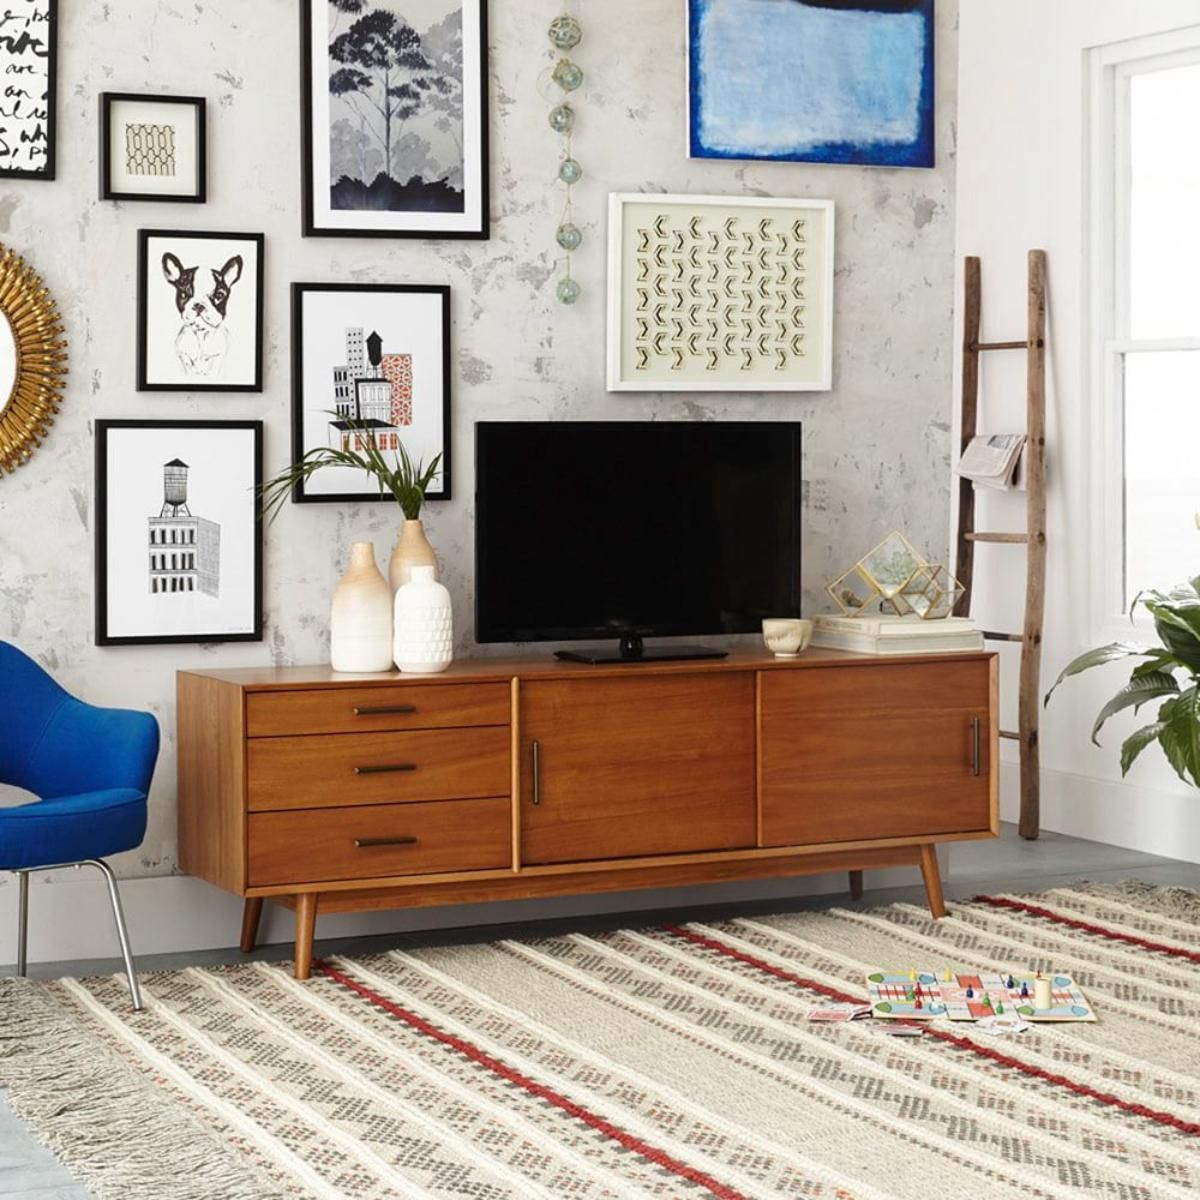 Retro Living Room mid-century media console (203 cm) - acorn | retro living rooms